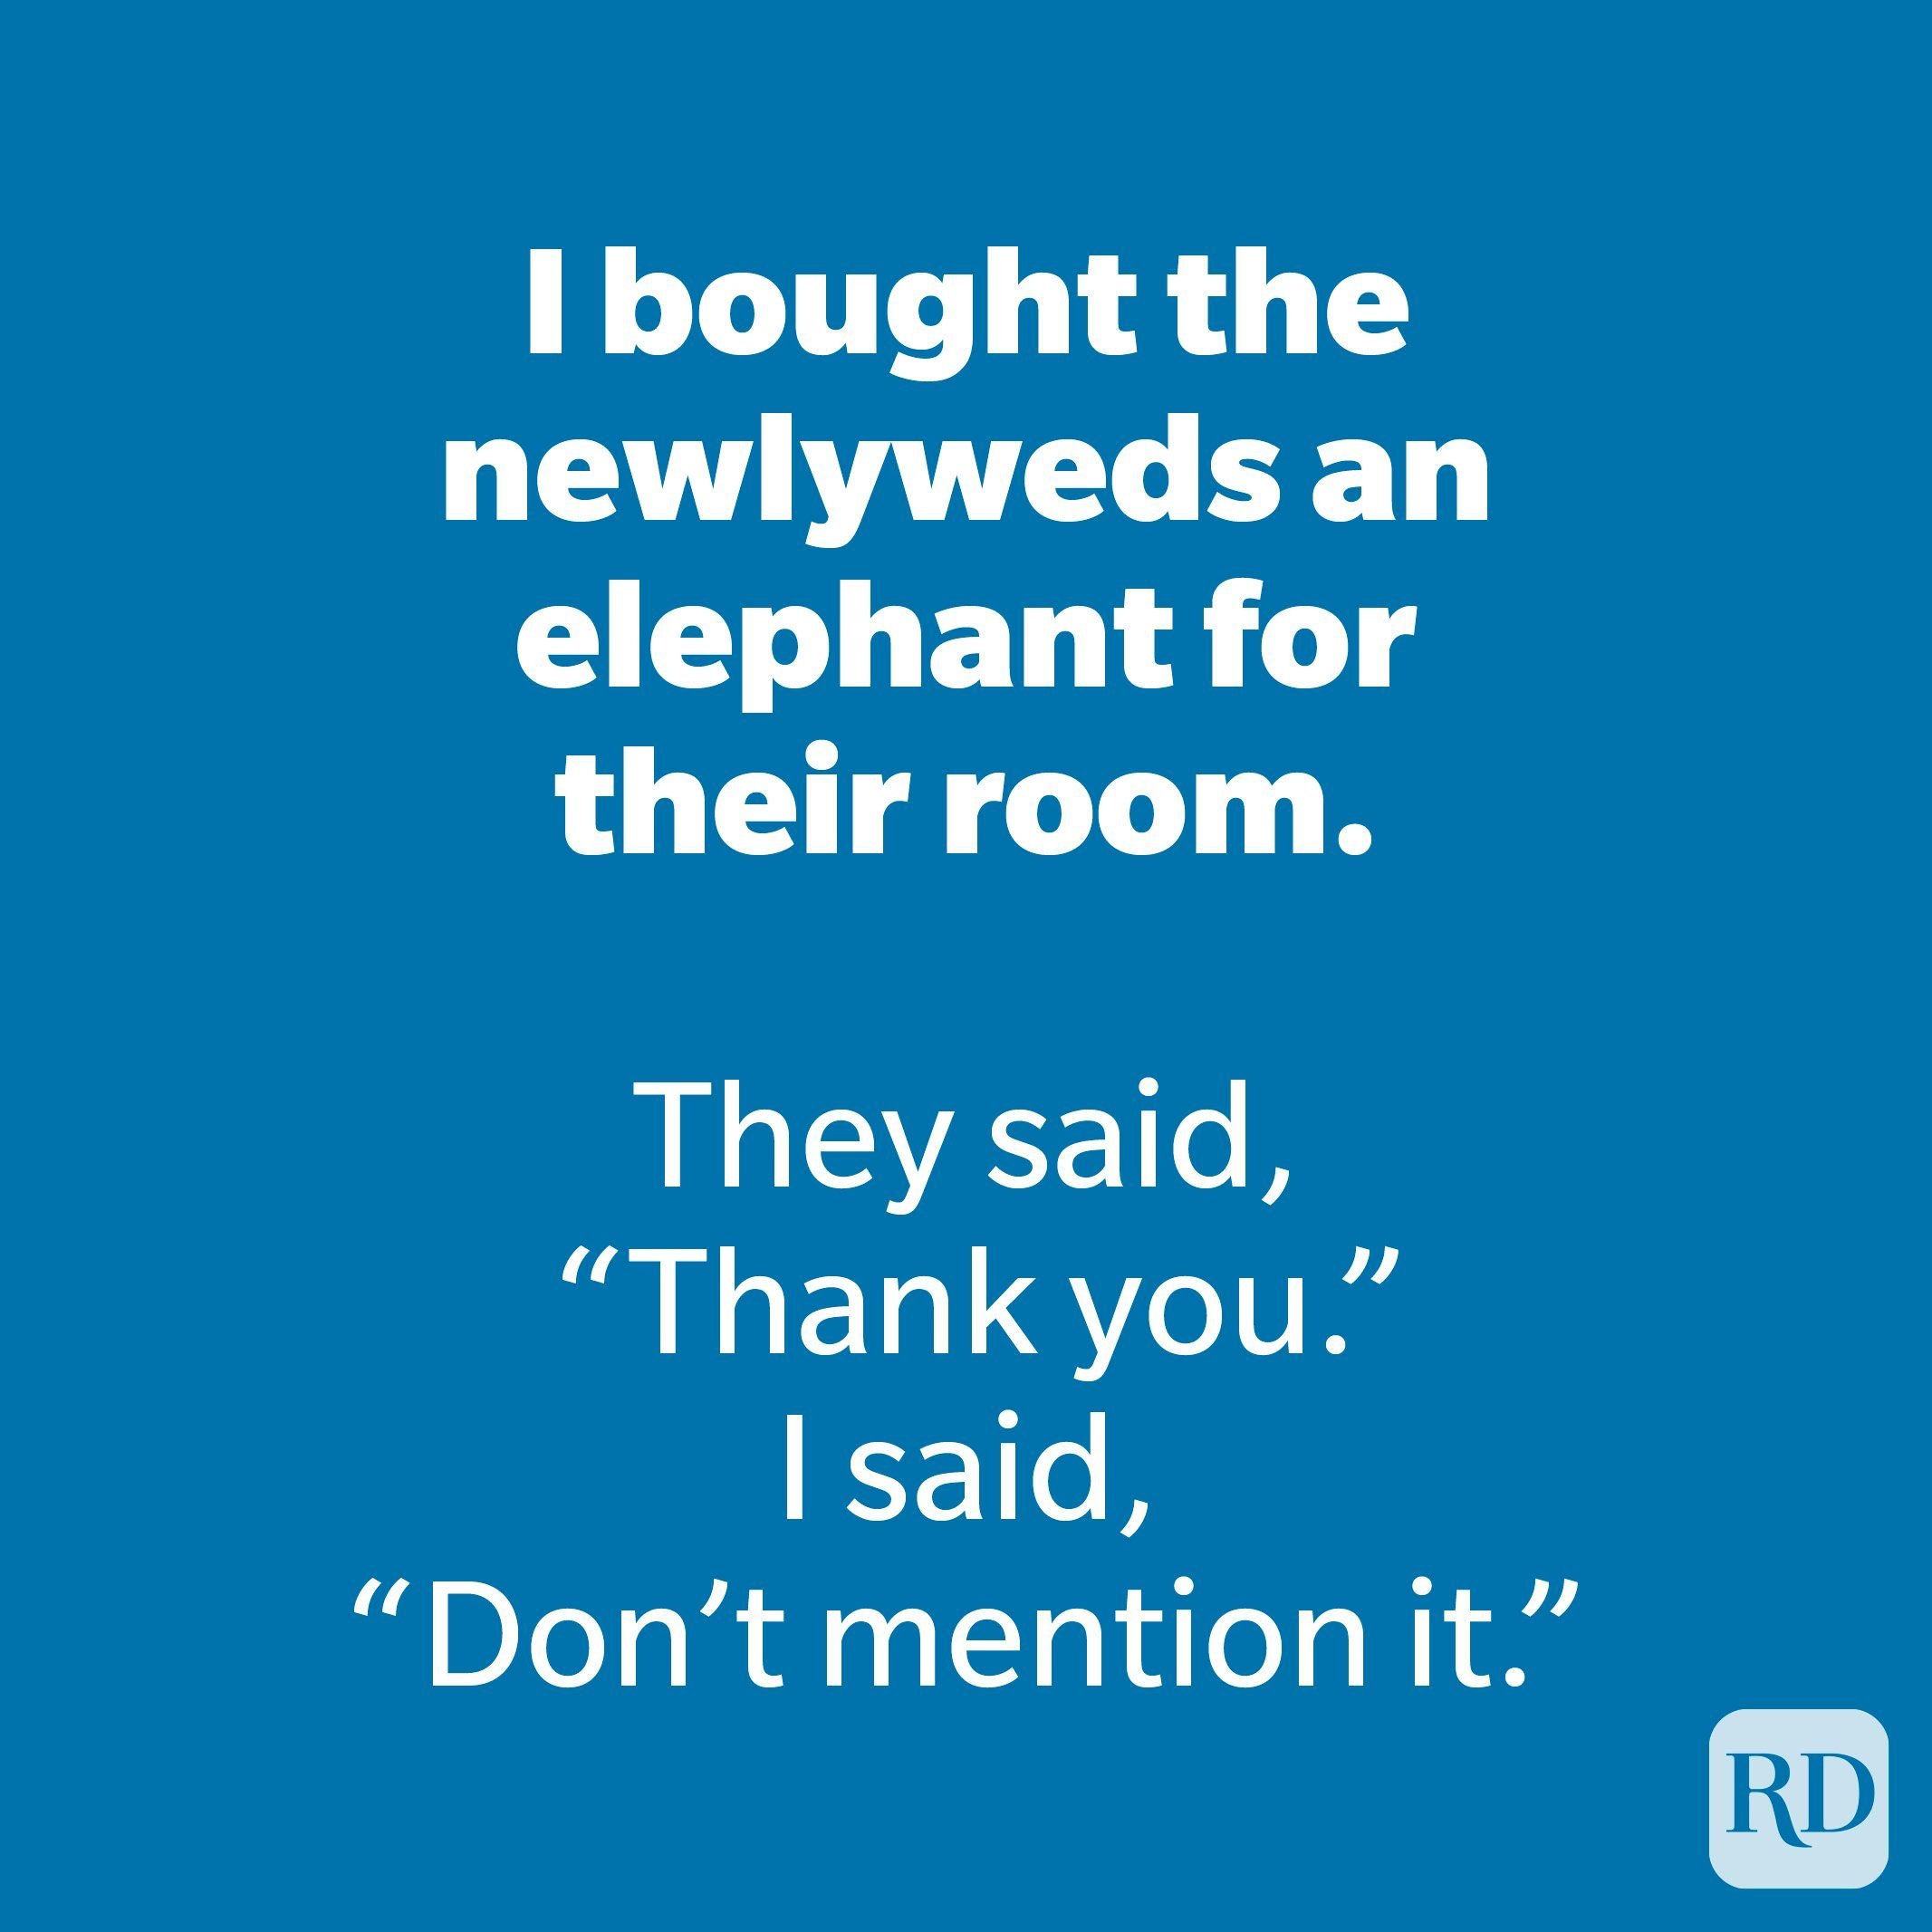 I bought the newlyweds an elephant for their room.